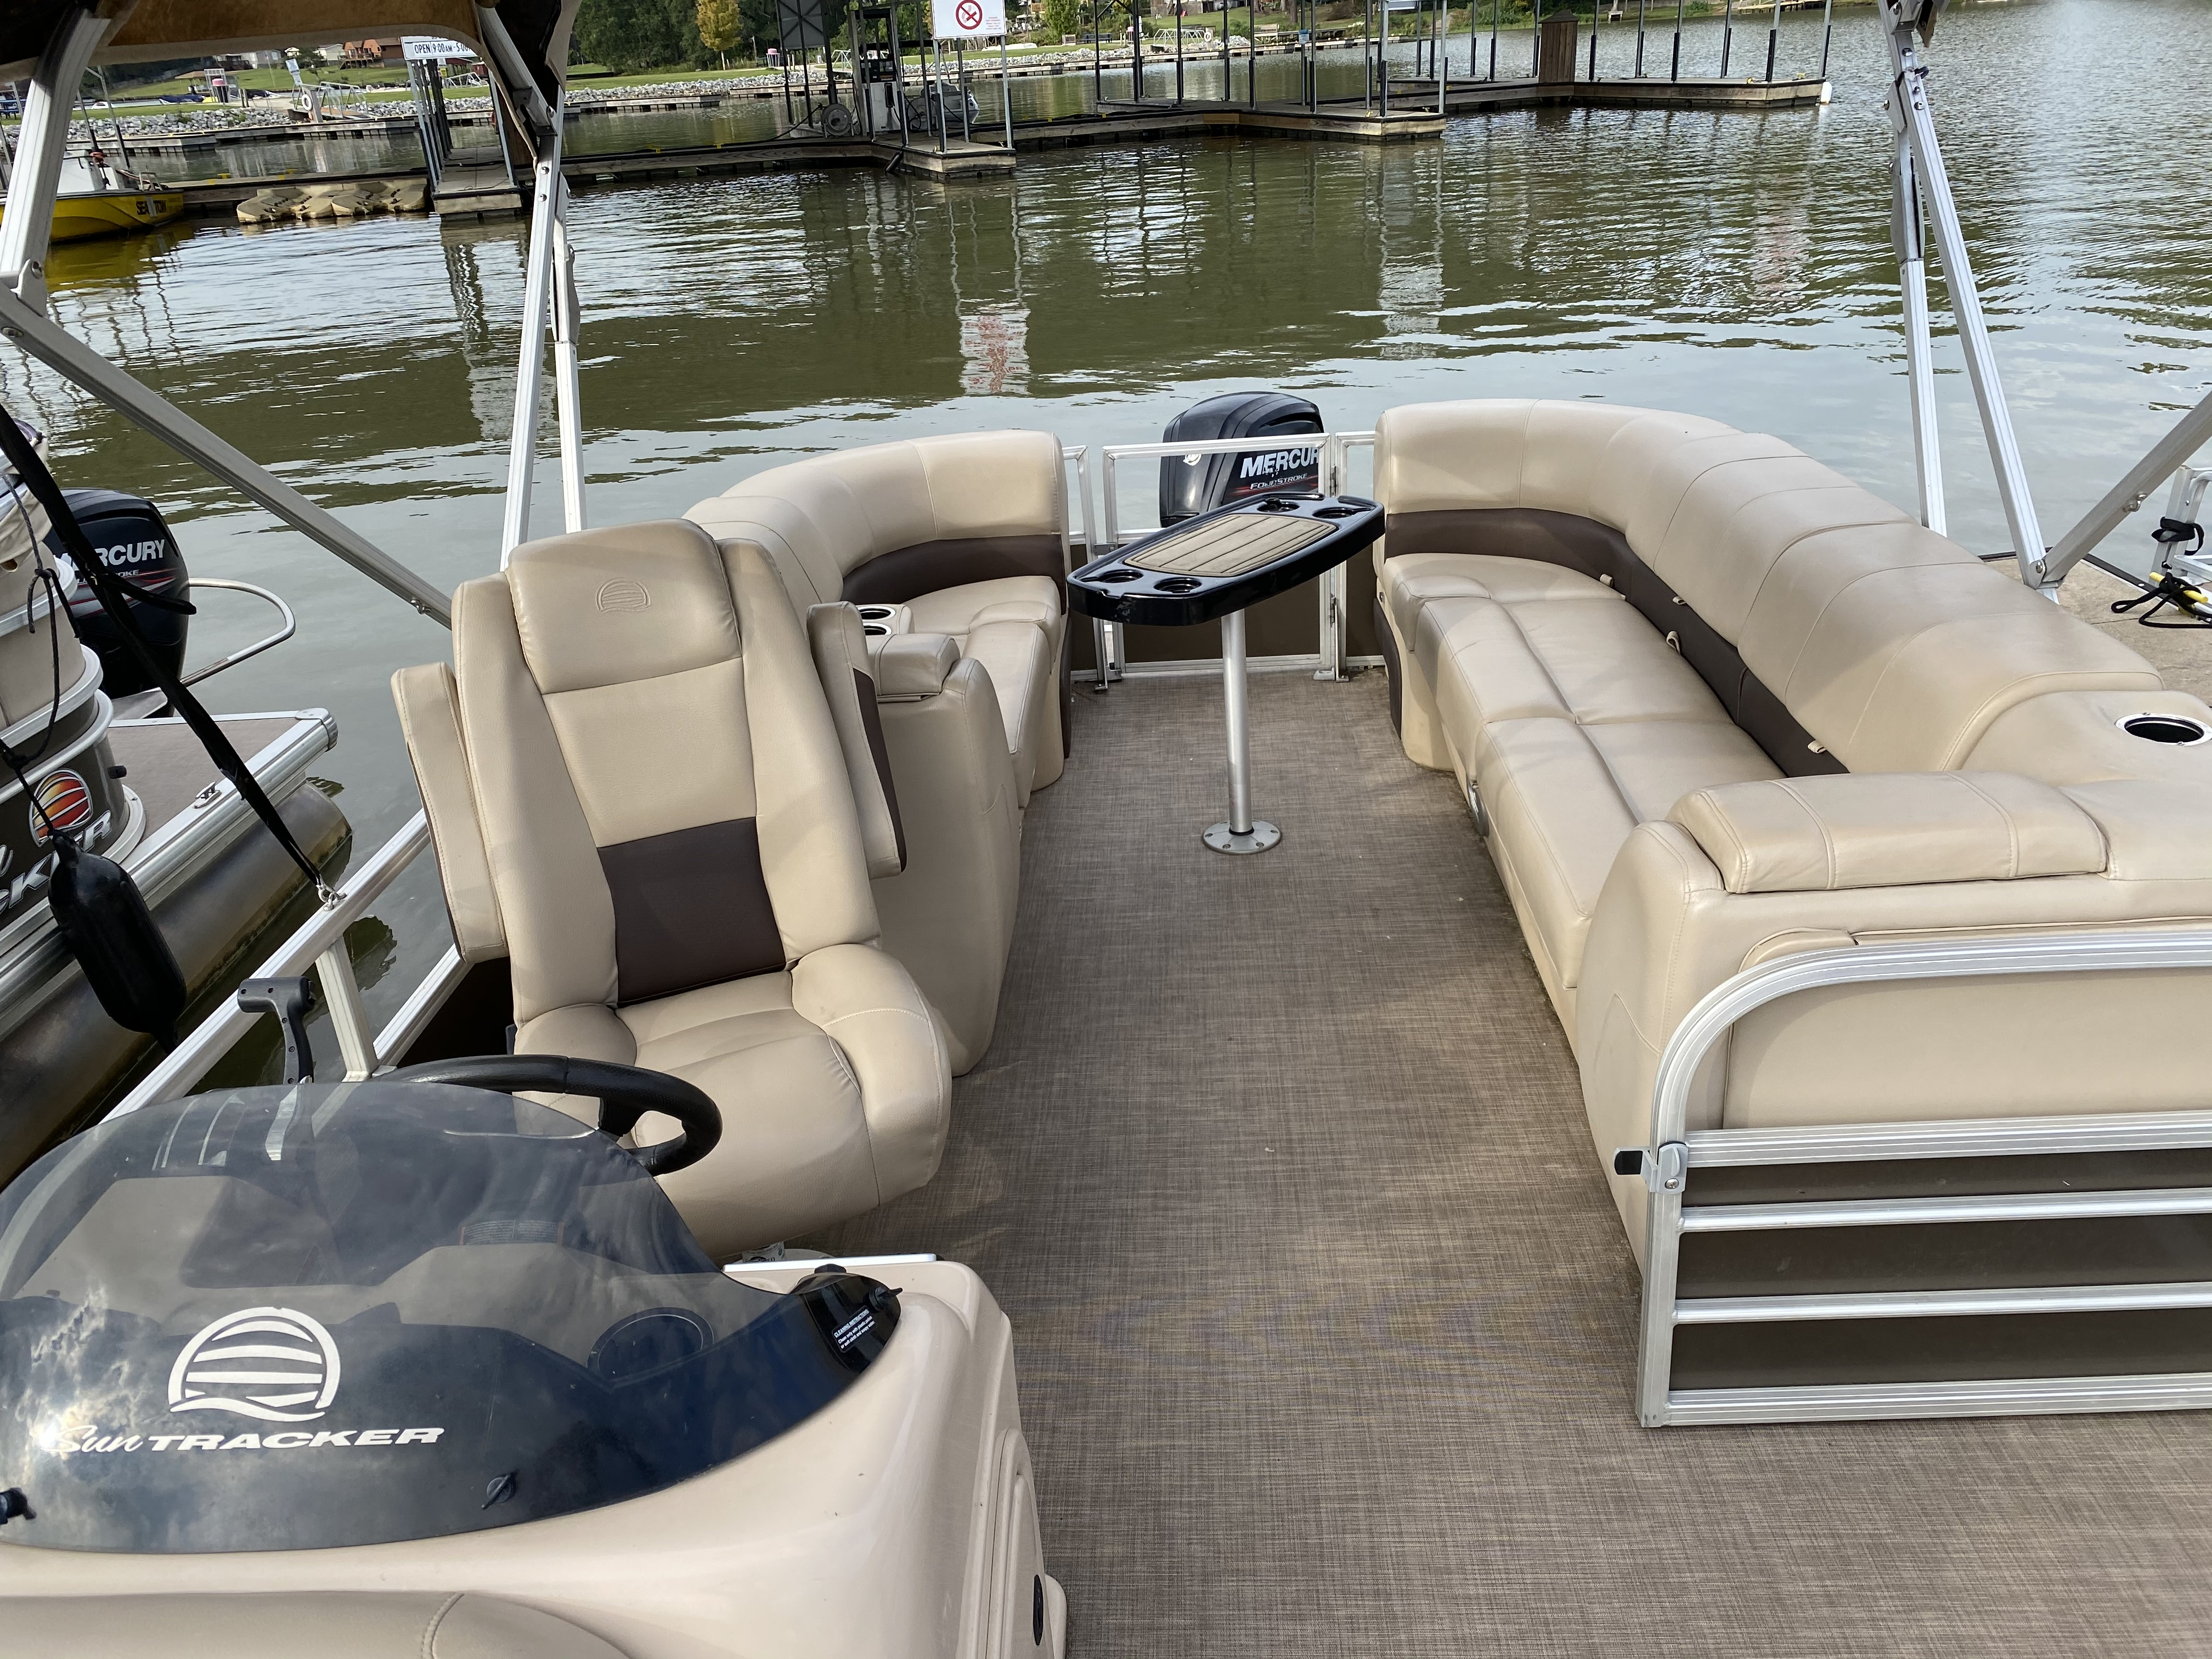 2019 Sun Tracker boat for sale, model of the boat is PARTY BARGE 22 w/ Mercury 115 ELPT 4S & Image # 25 of 26